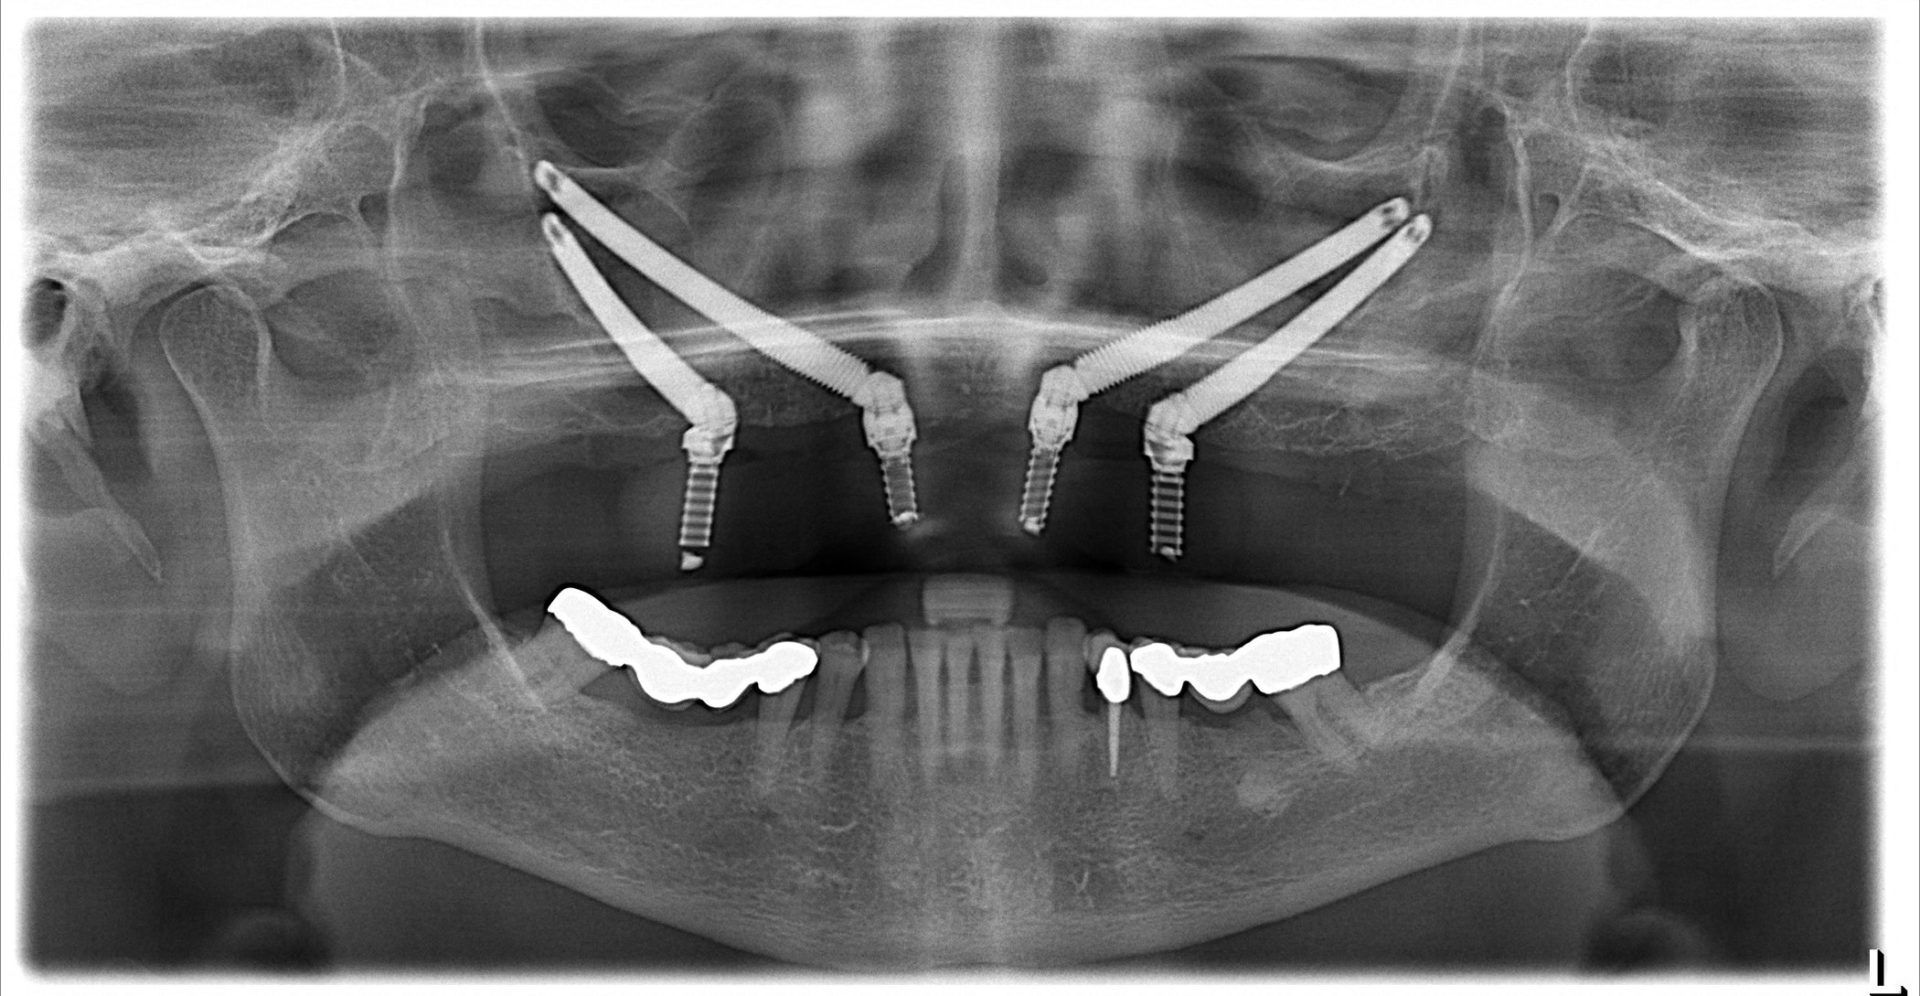 Zygomatic dental implants are beneficial for patients with severe bone loss